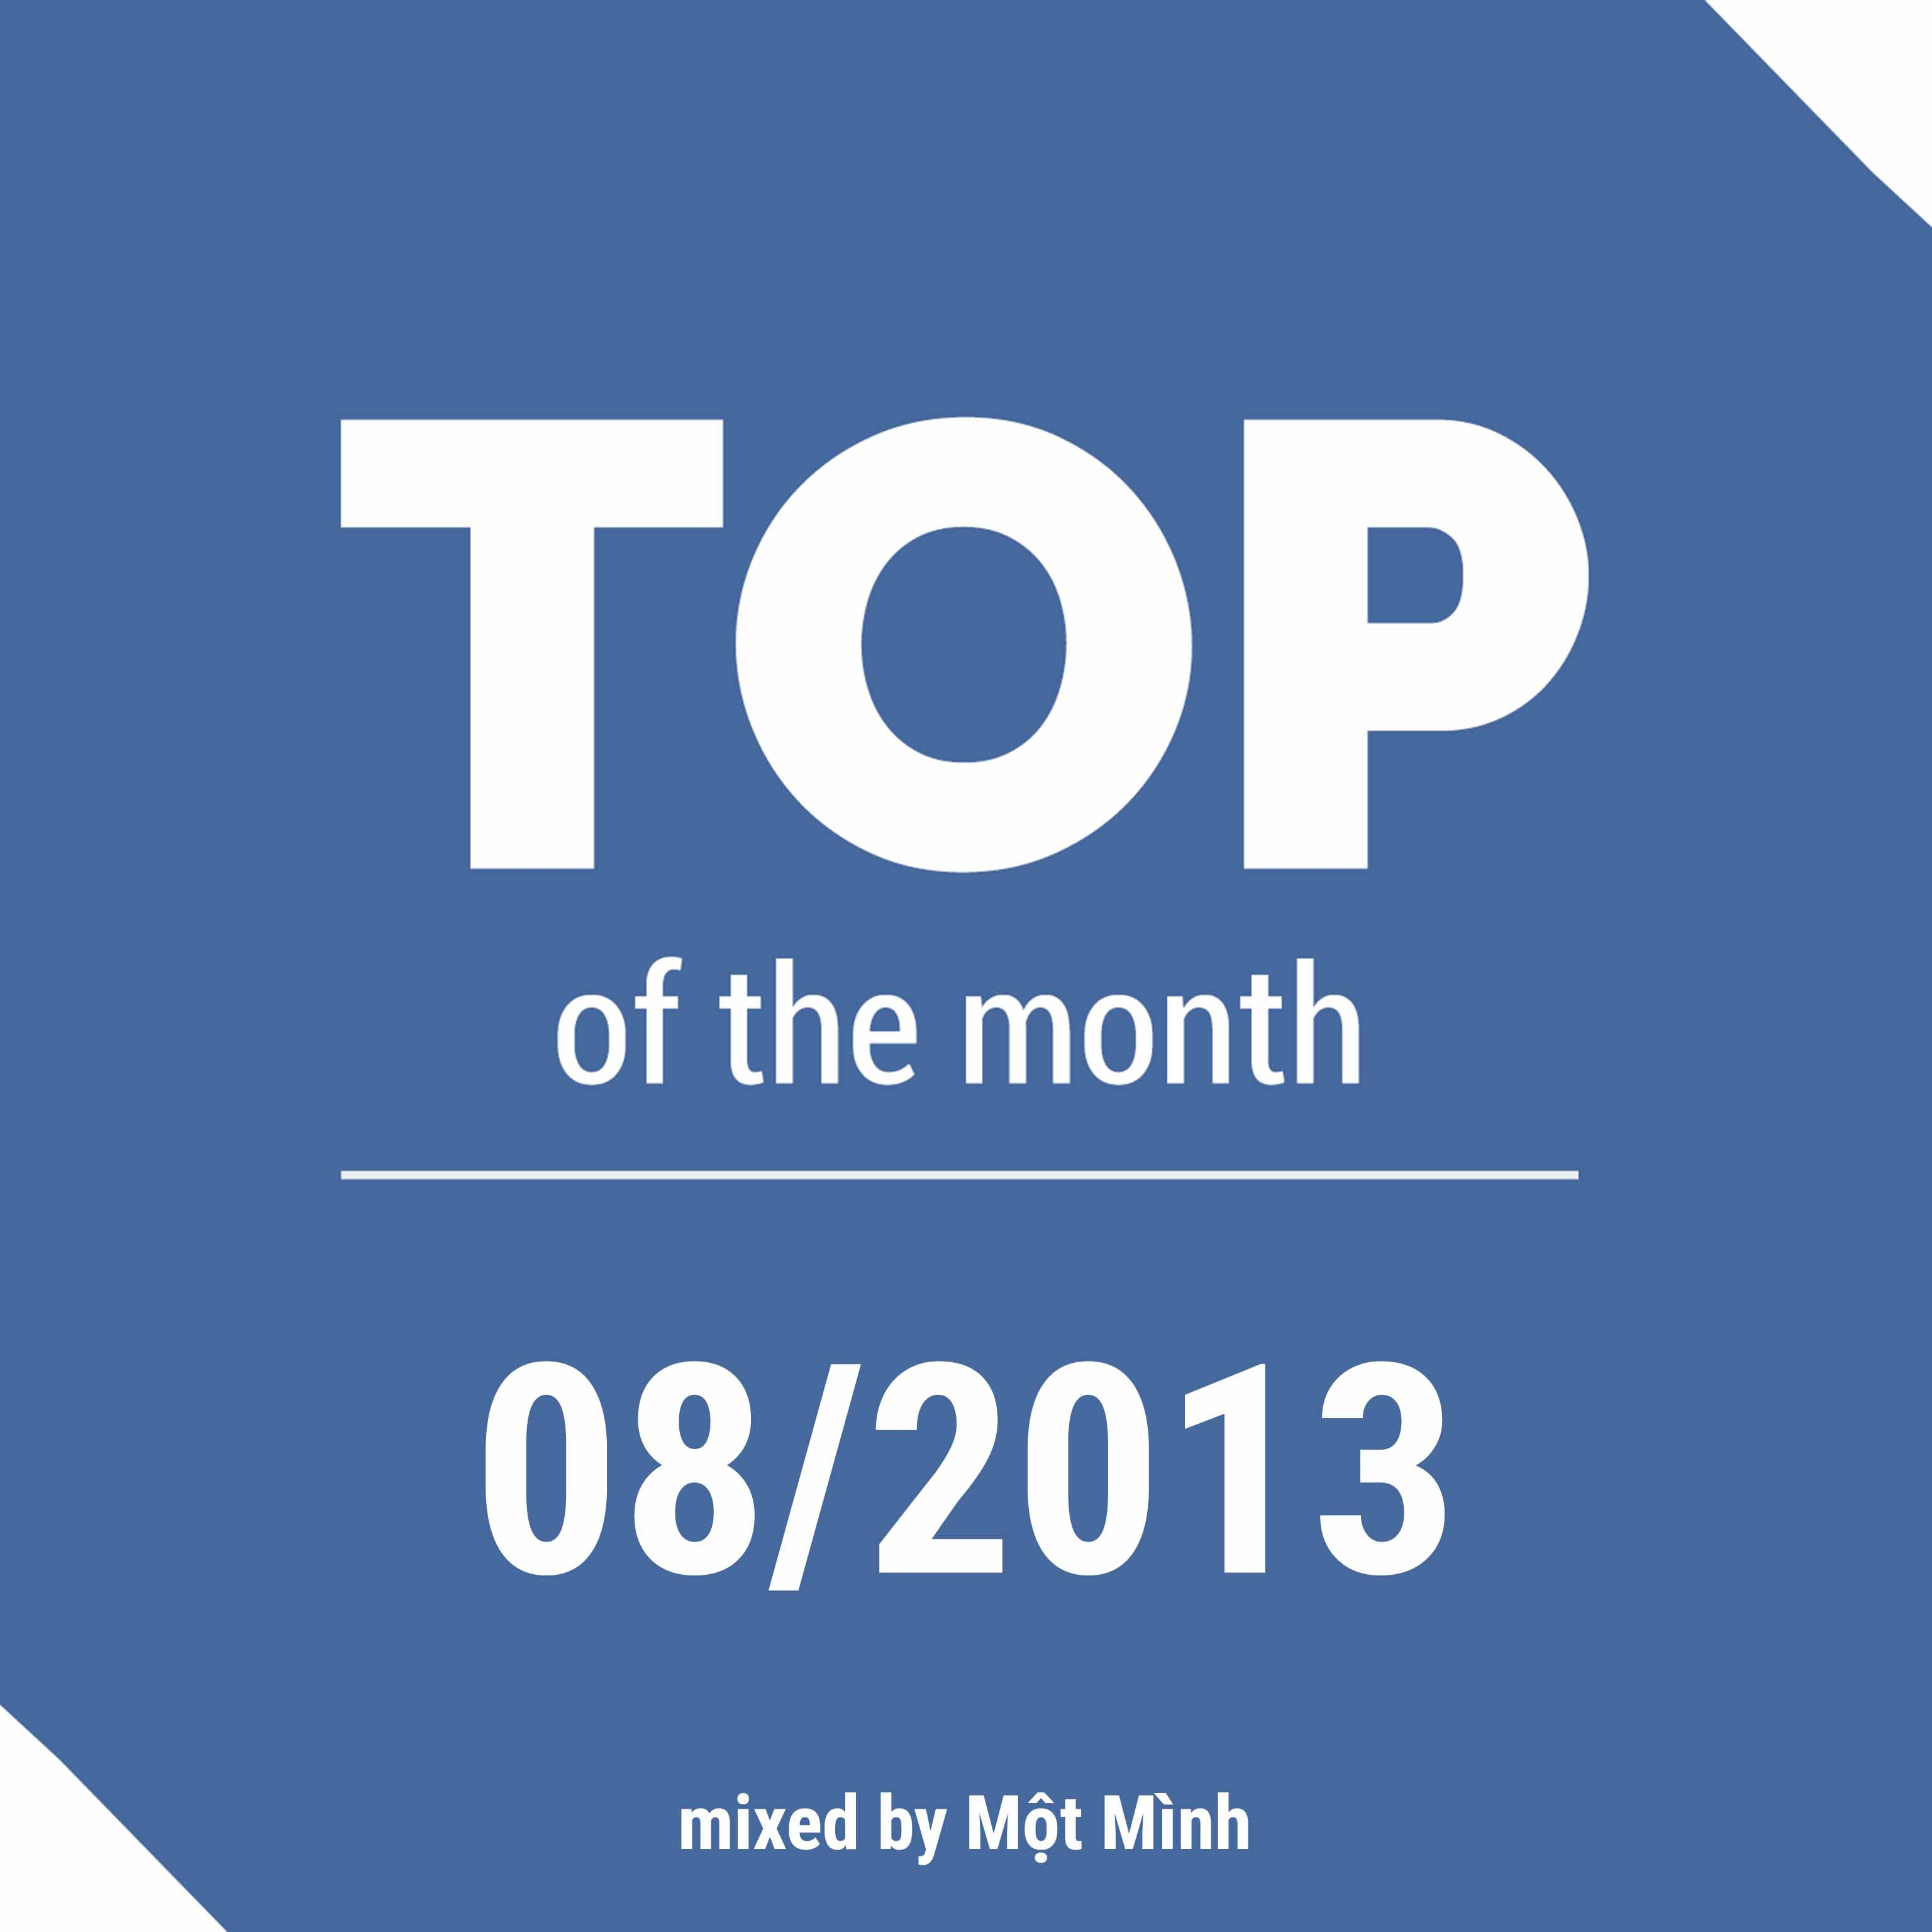 Top 10 of August 2013